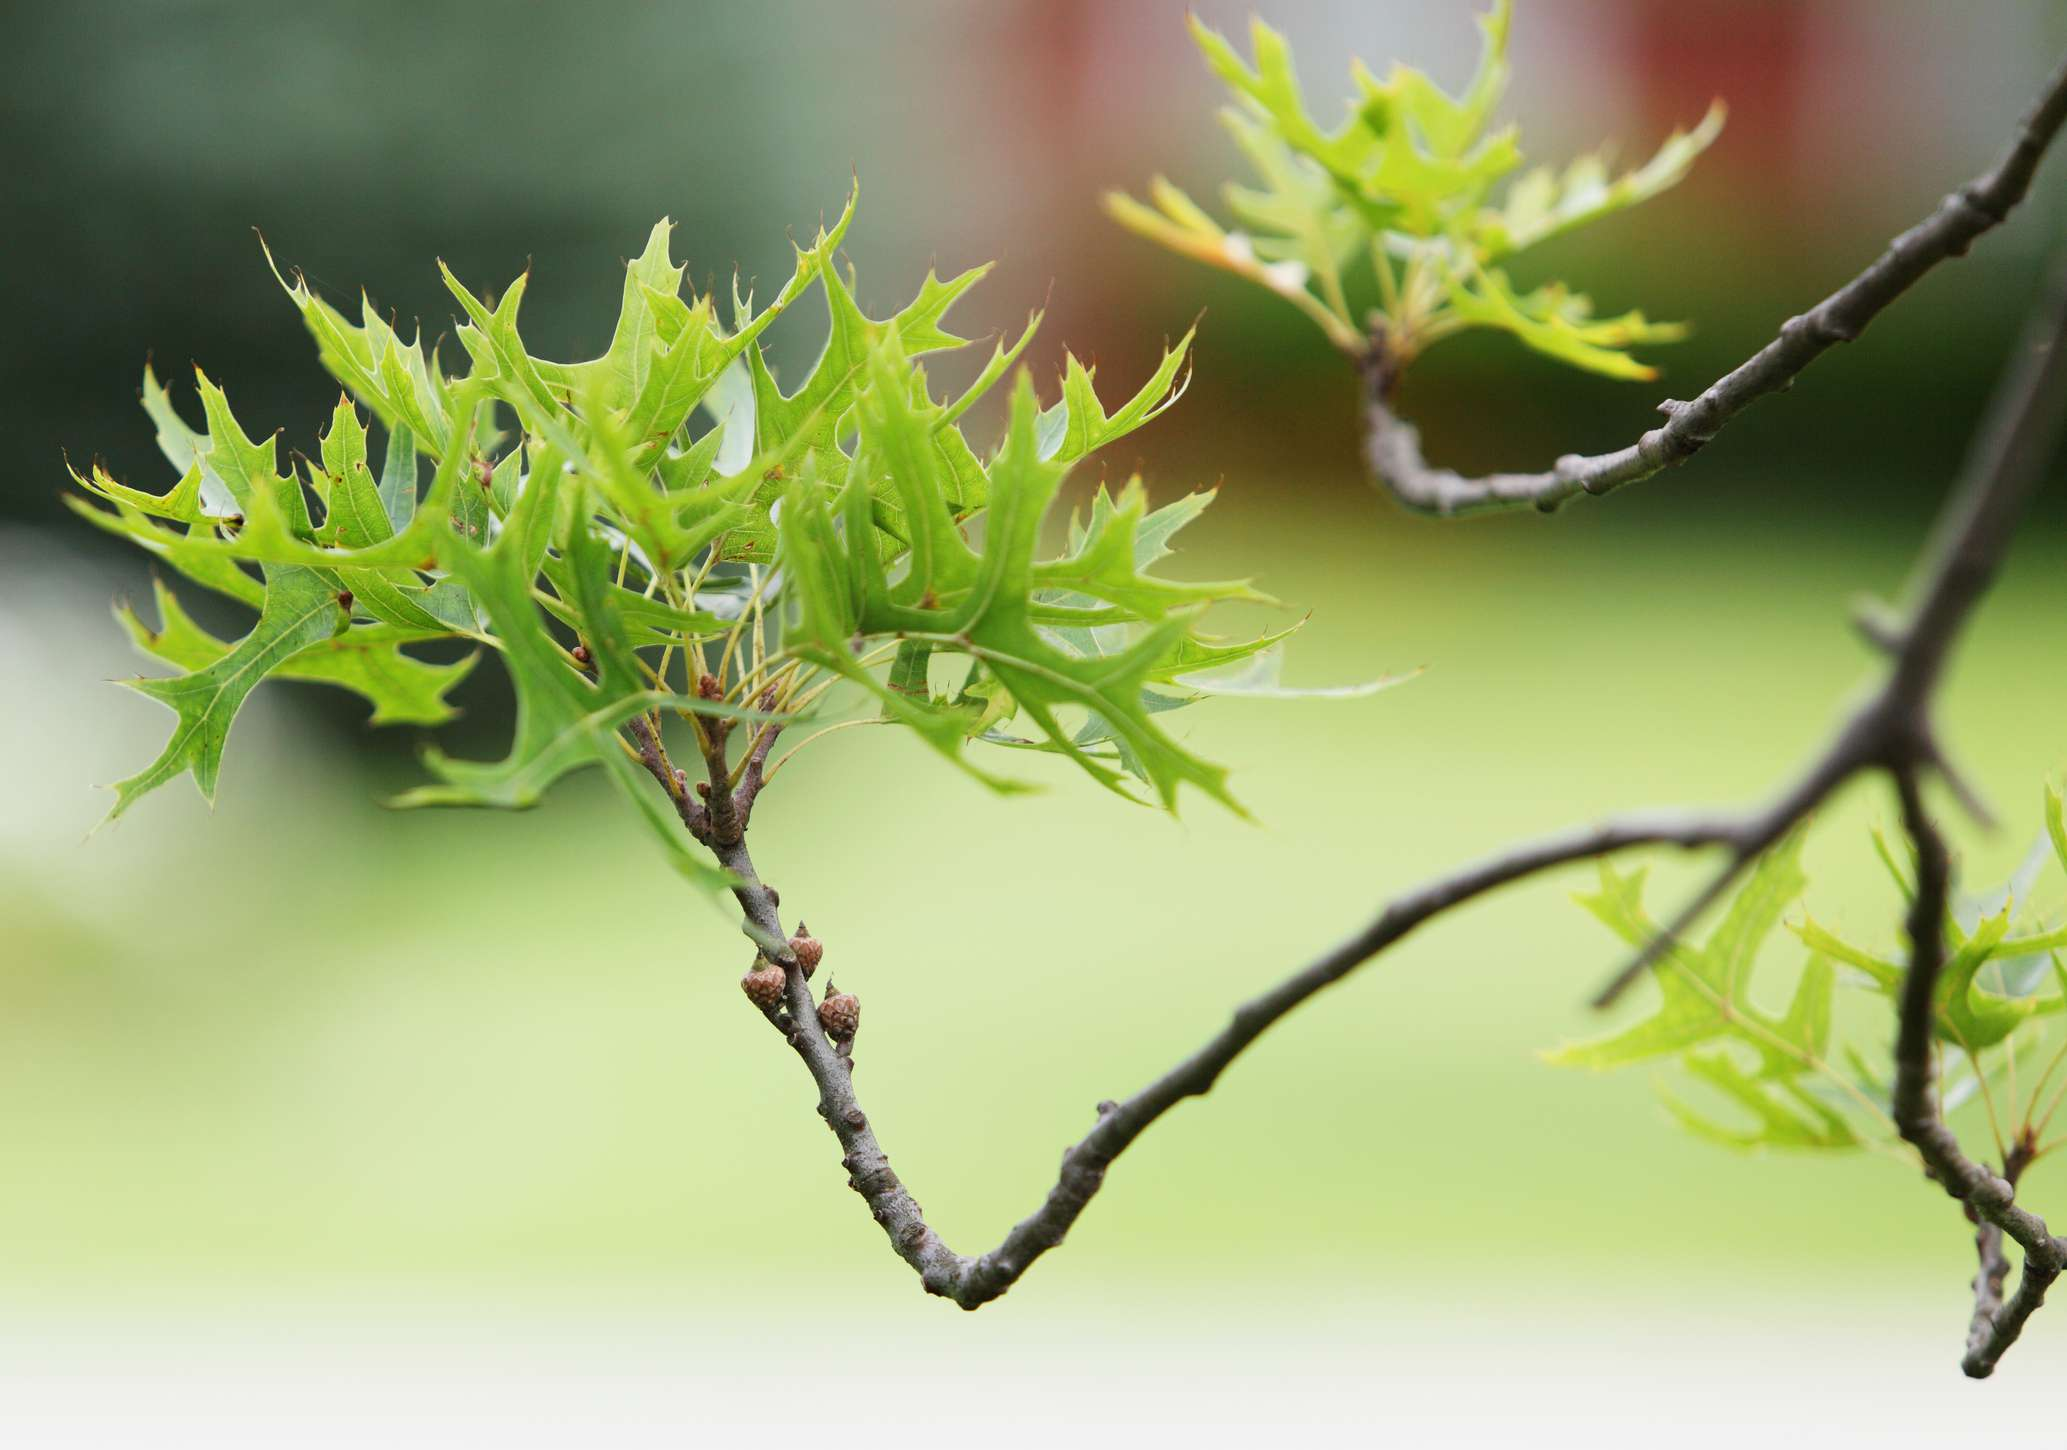 Leaves sprouting on a distressed Pin Oak tree.